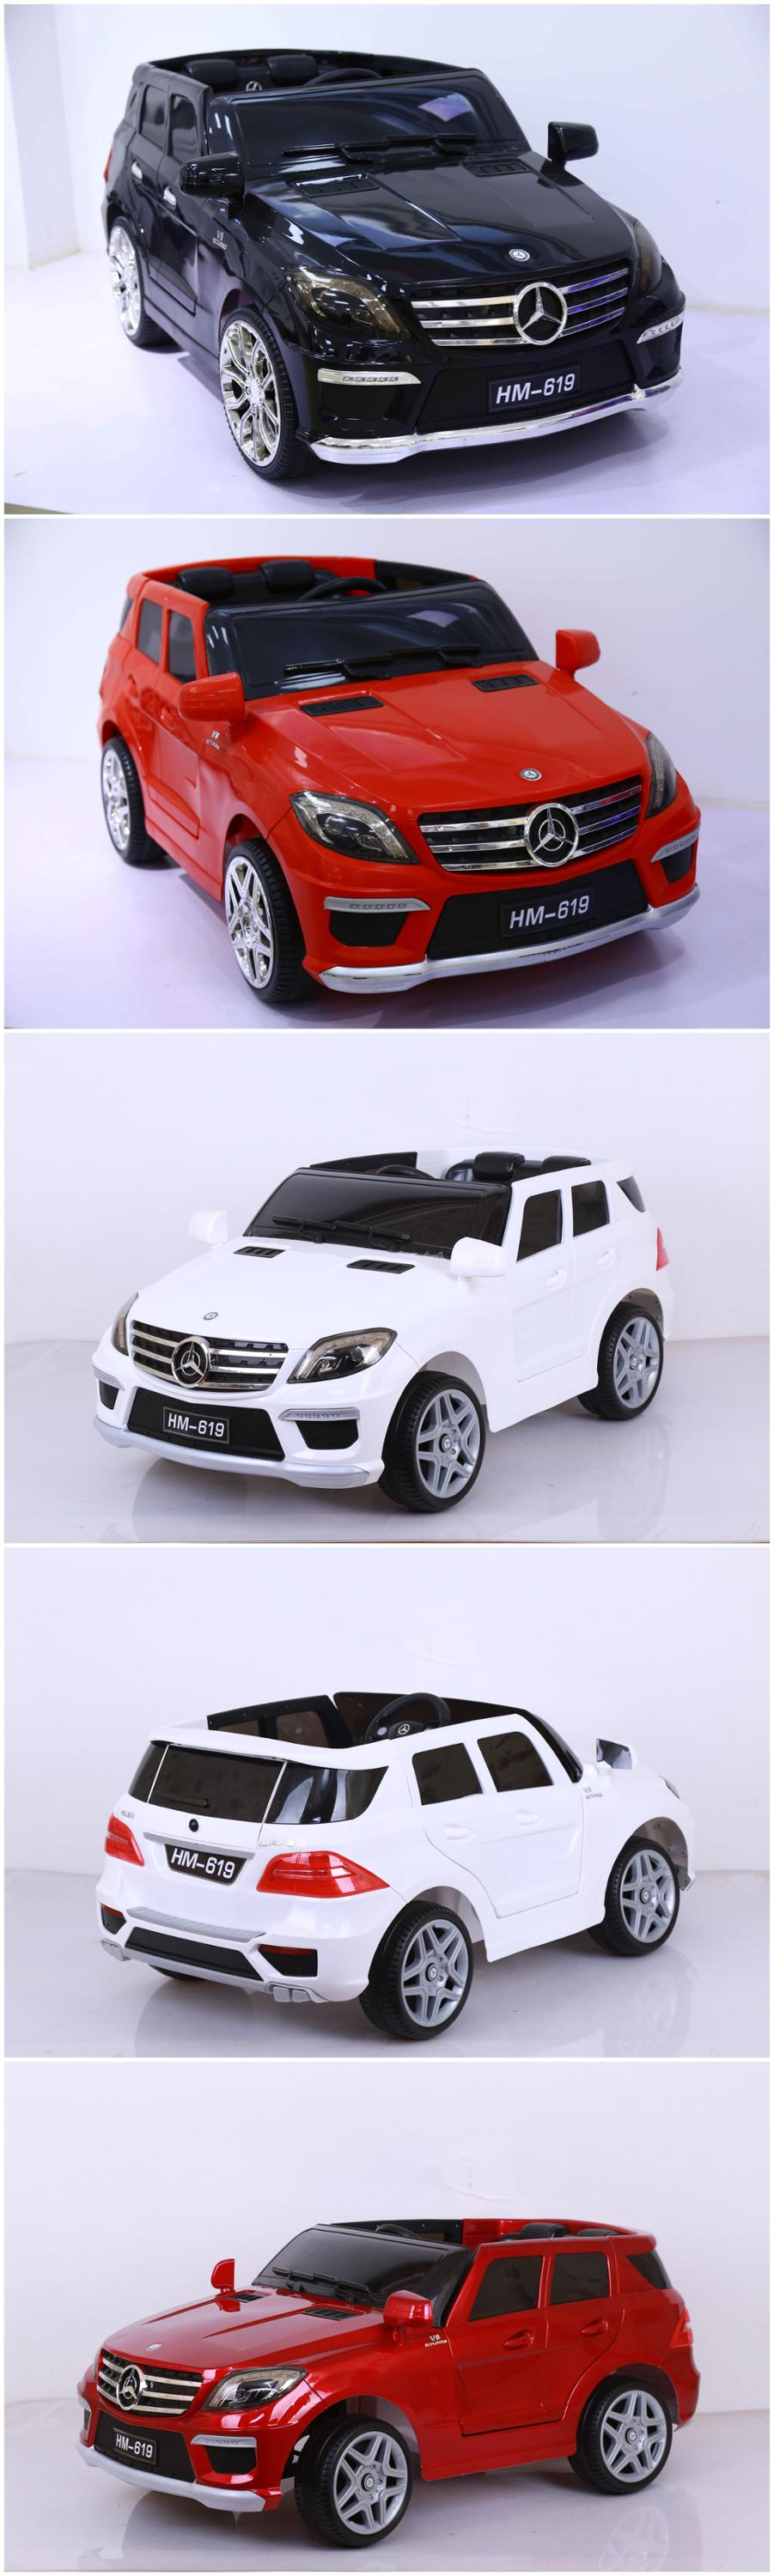 rechargeable electric car toykids car toy automatic baby carrechargeable baby car